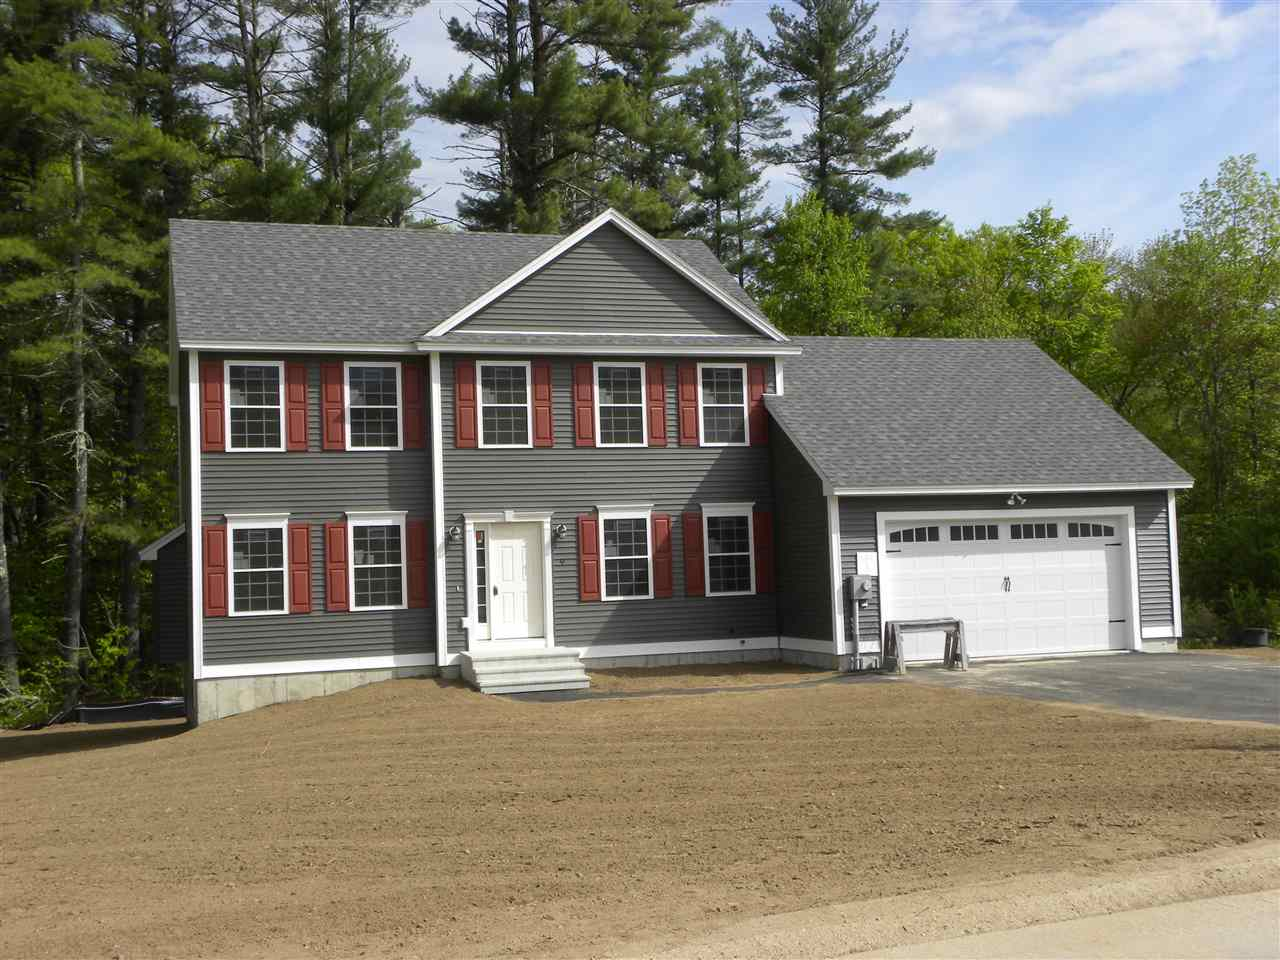 Photo of 9 Sandybrook Drive Raymond NH 03077